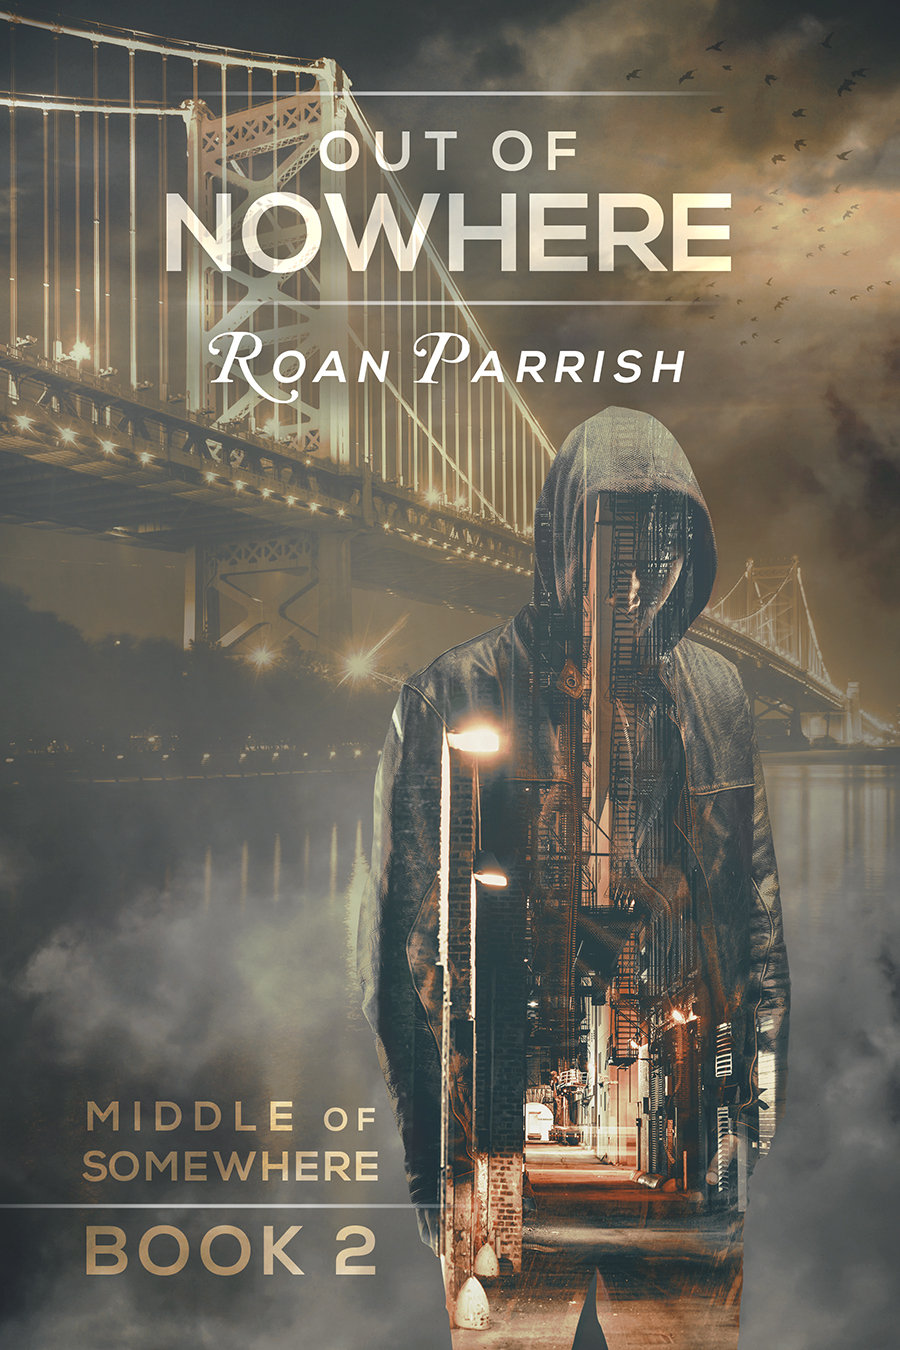 Out of Nowhere (Middle of Somewhere #2) Roan Parrishhttp://amzn.to/1SqMtP5